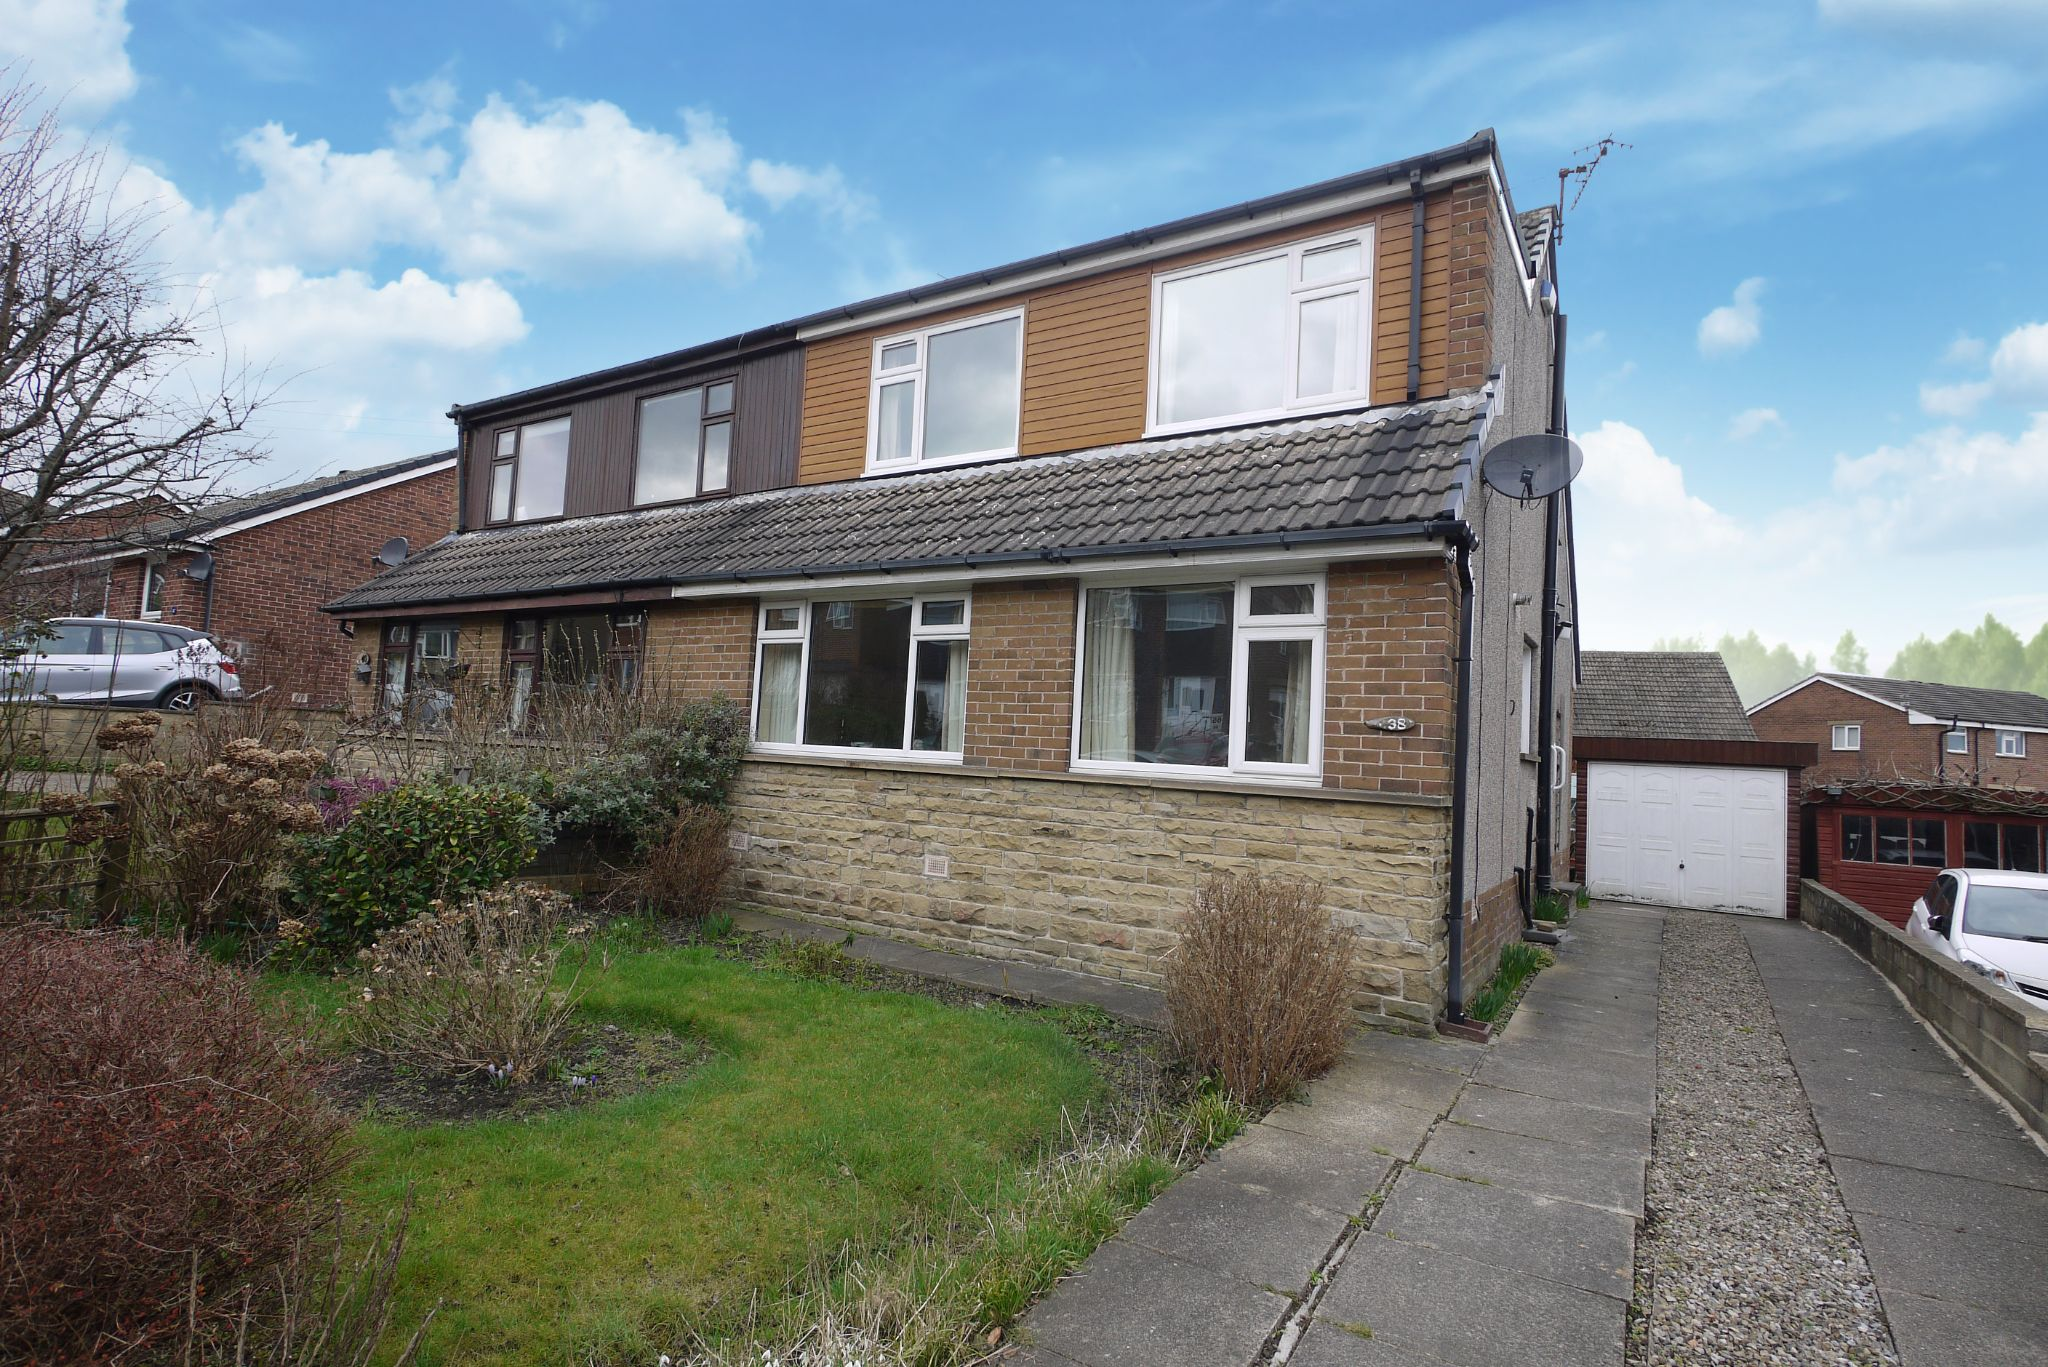 4 bedroom semi-detached house SSTC in Brighouse - Photograph 1.